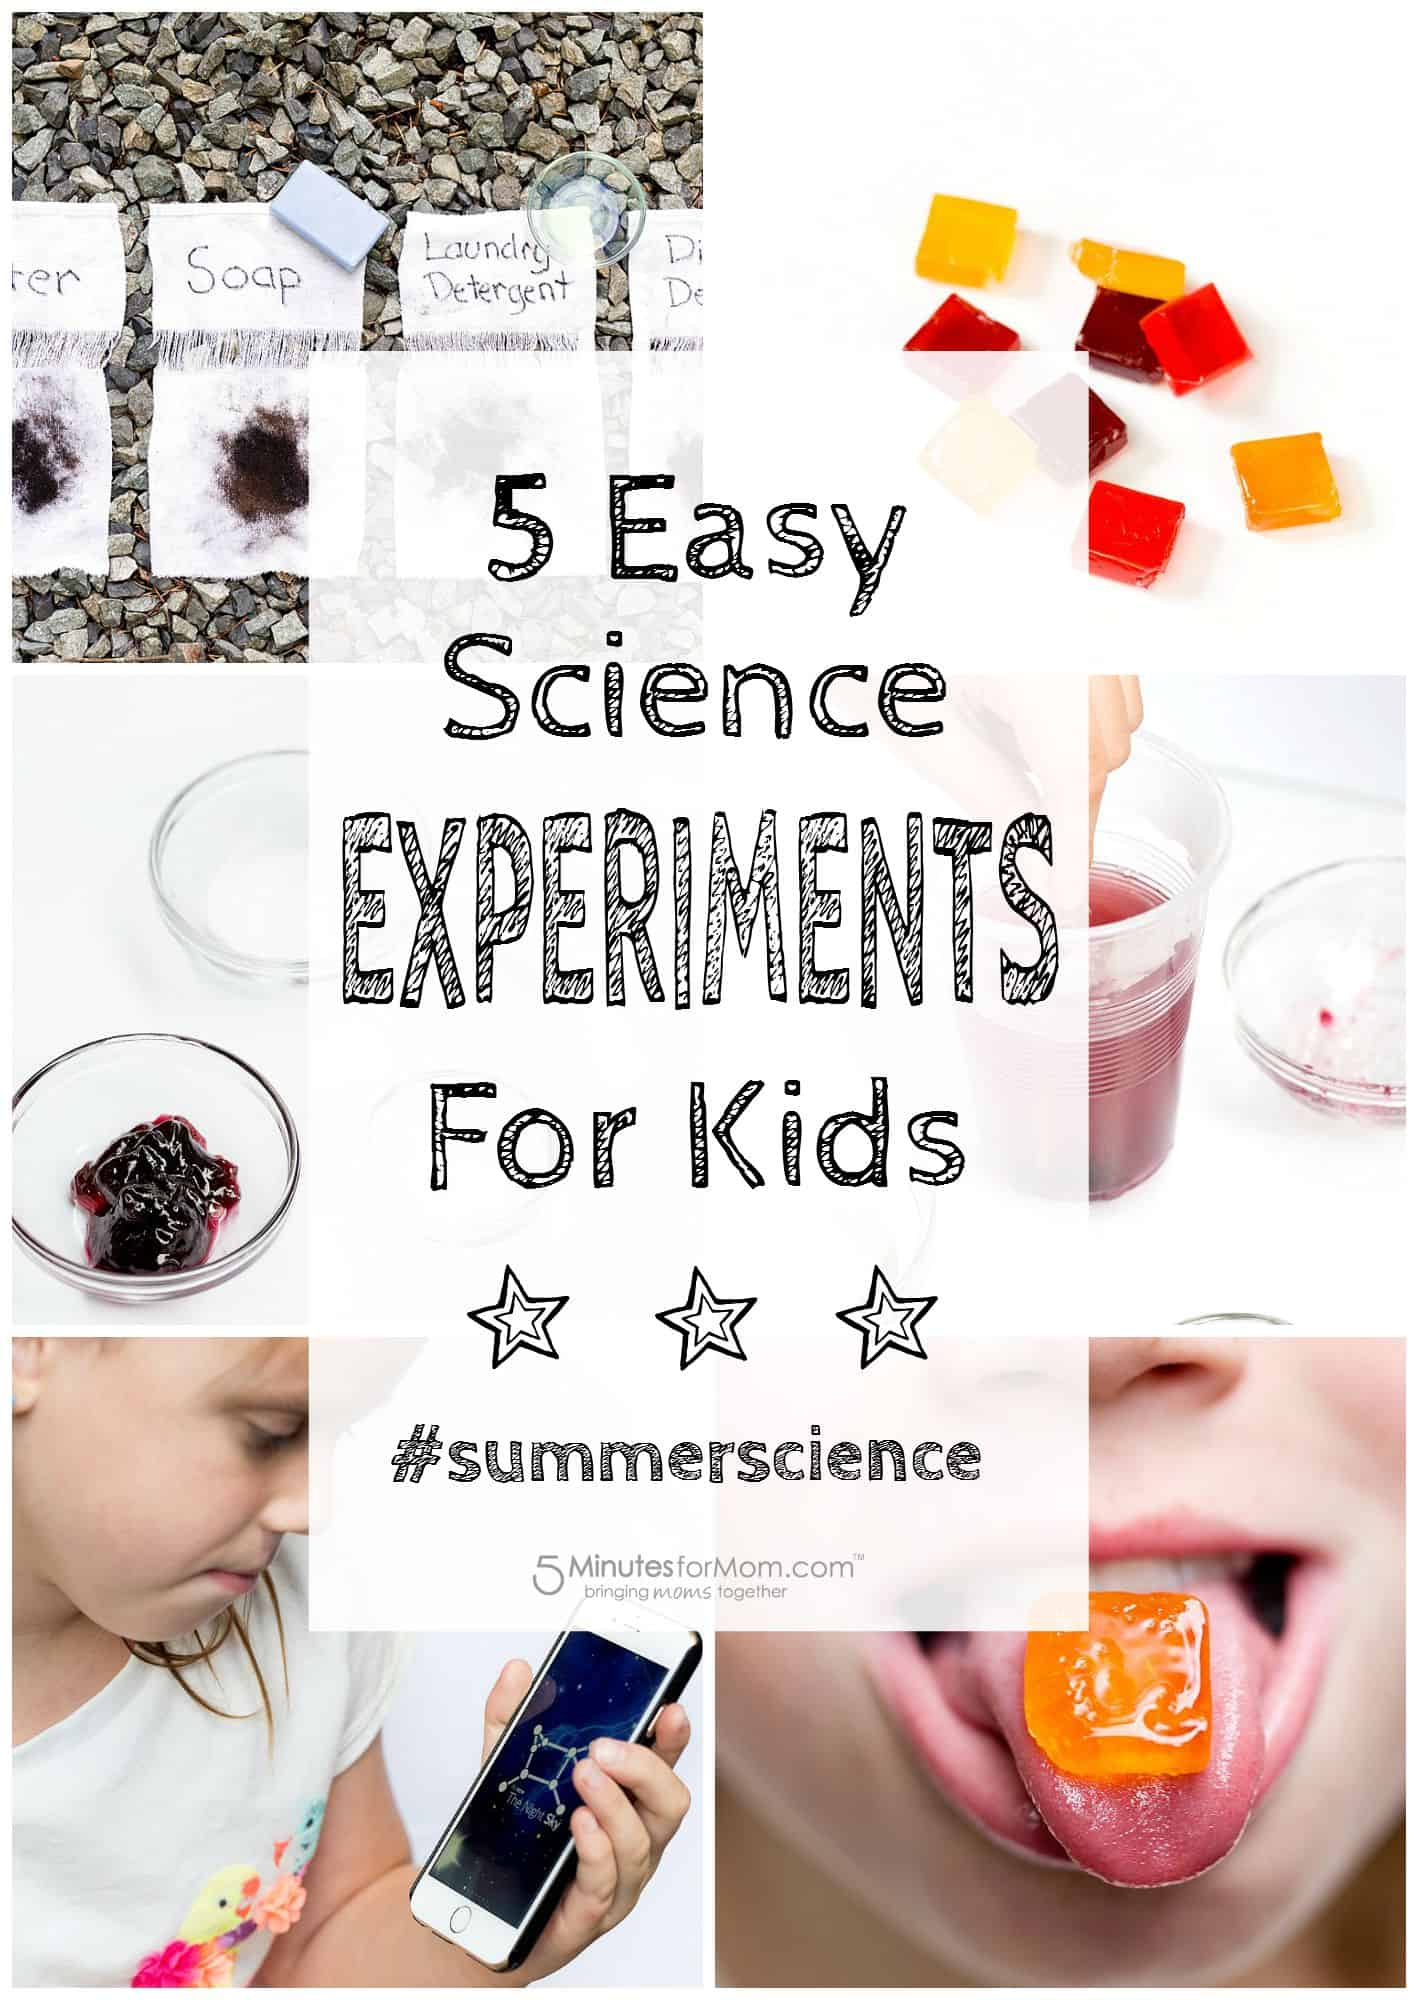 Summer Science For Kids - Fun Kids Science Experiments